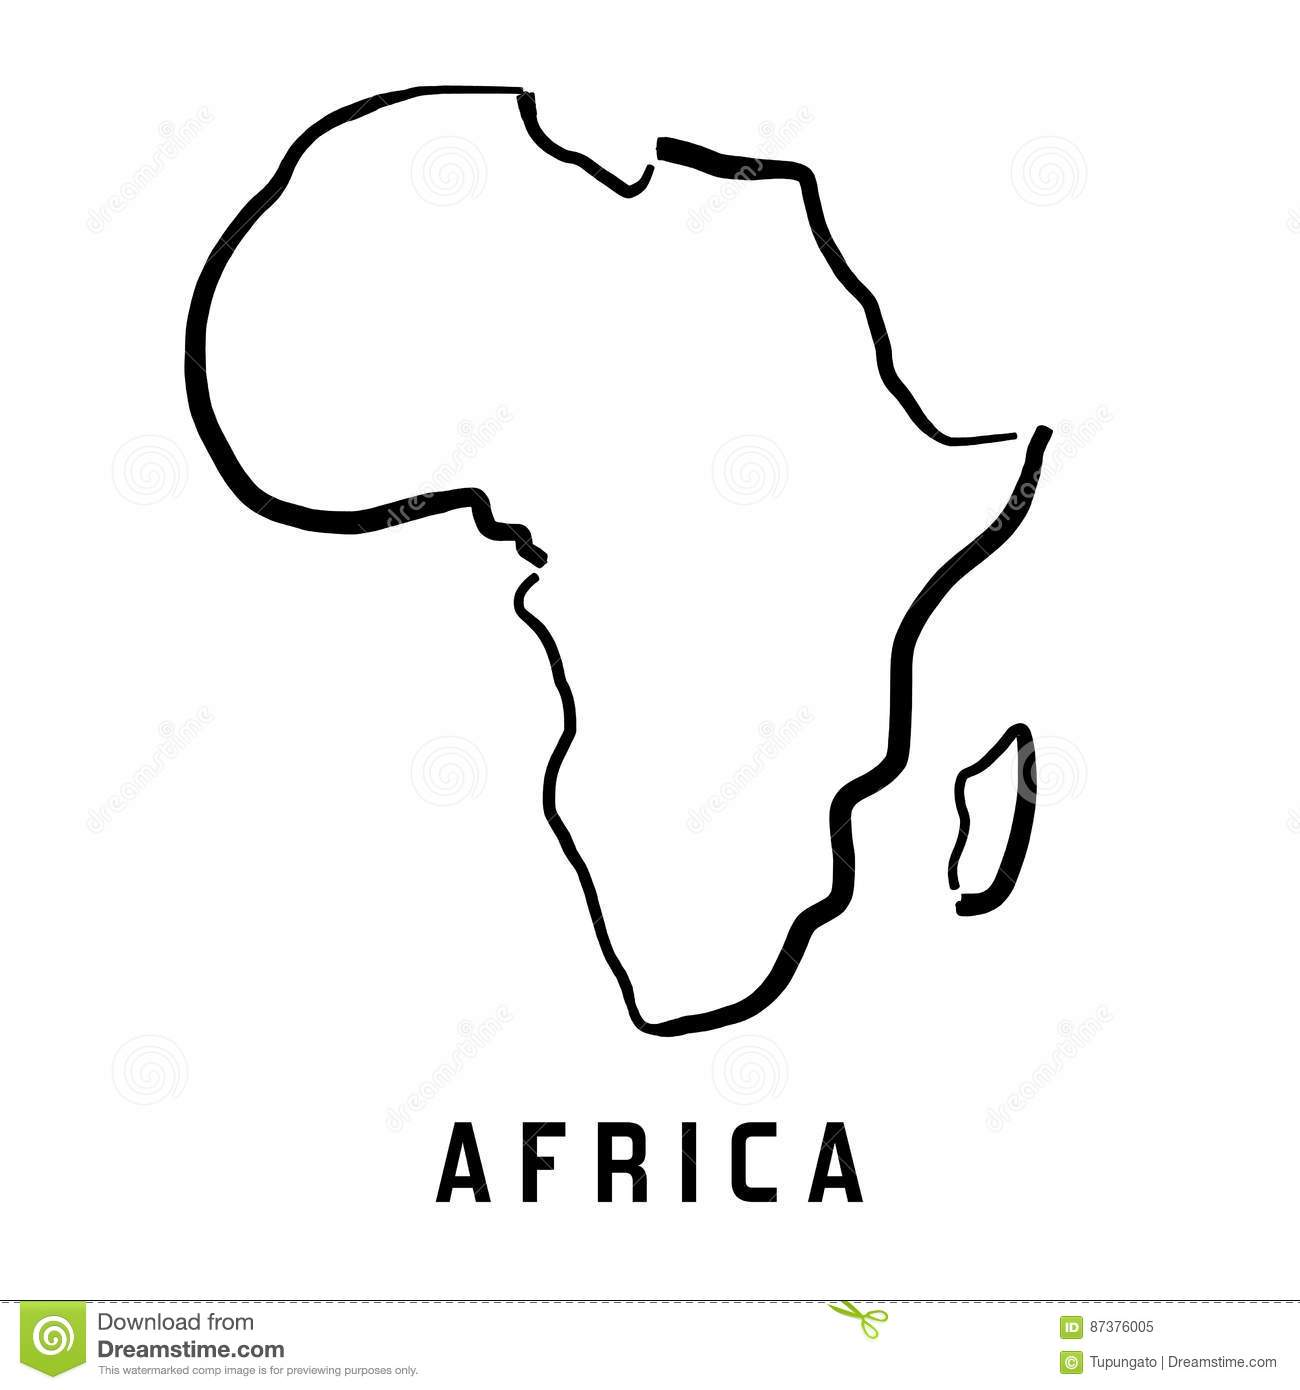 Africa Simple Map Stock Vector Illustration Of Concept 87376005